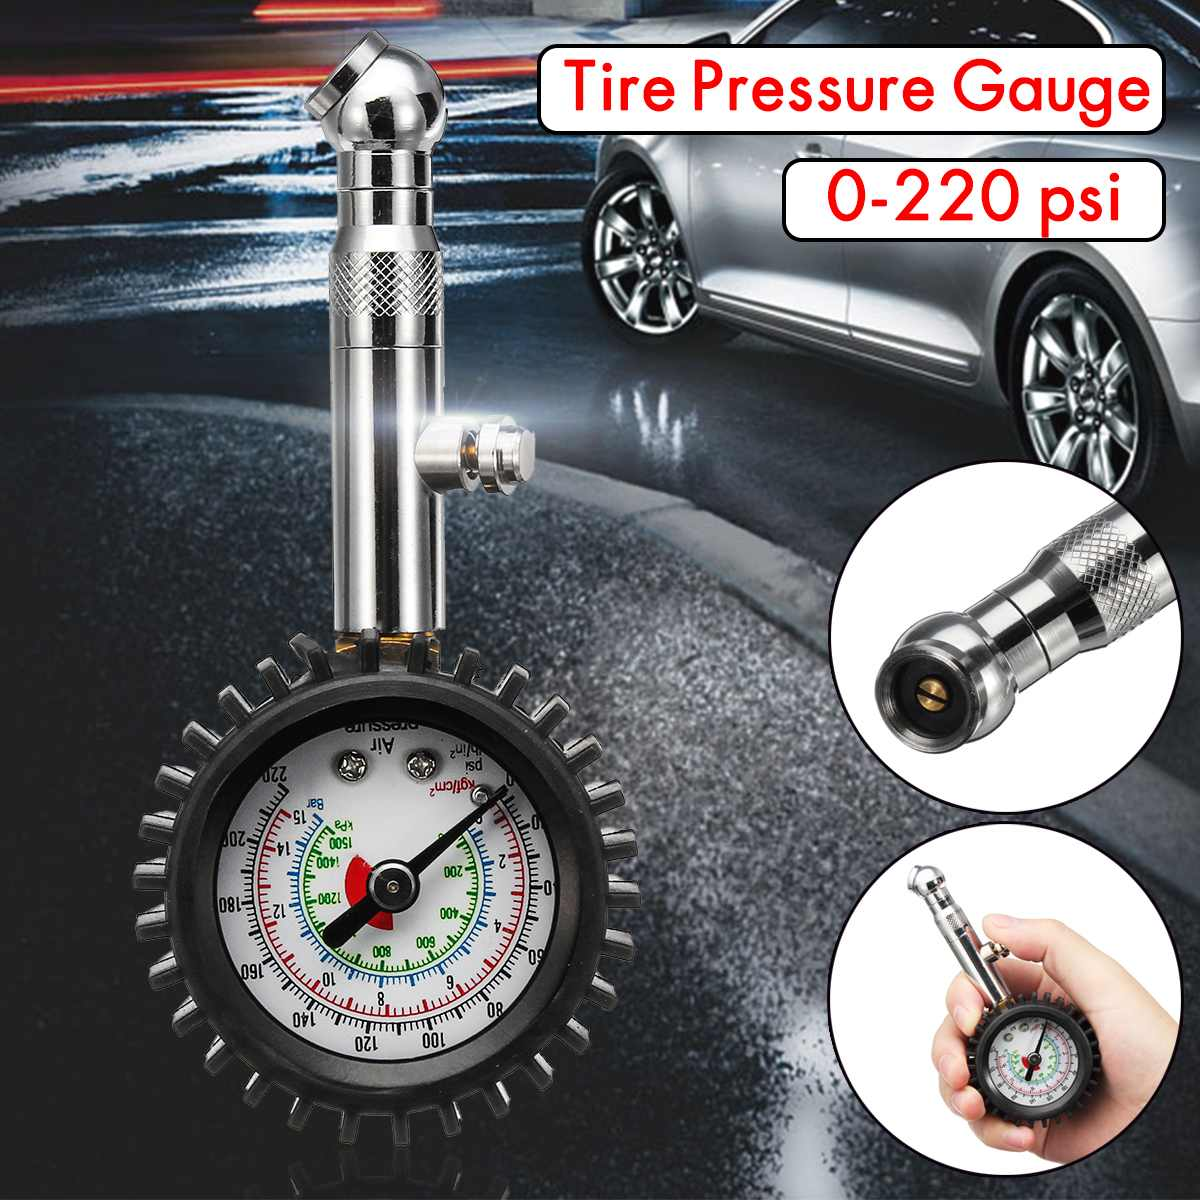 220PSI Tire Tyre Air Pressure Gauge Dial Meter For Auto Car Vehicle Motorcycle Motorbike Automobile